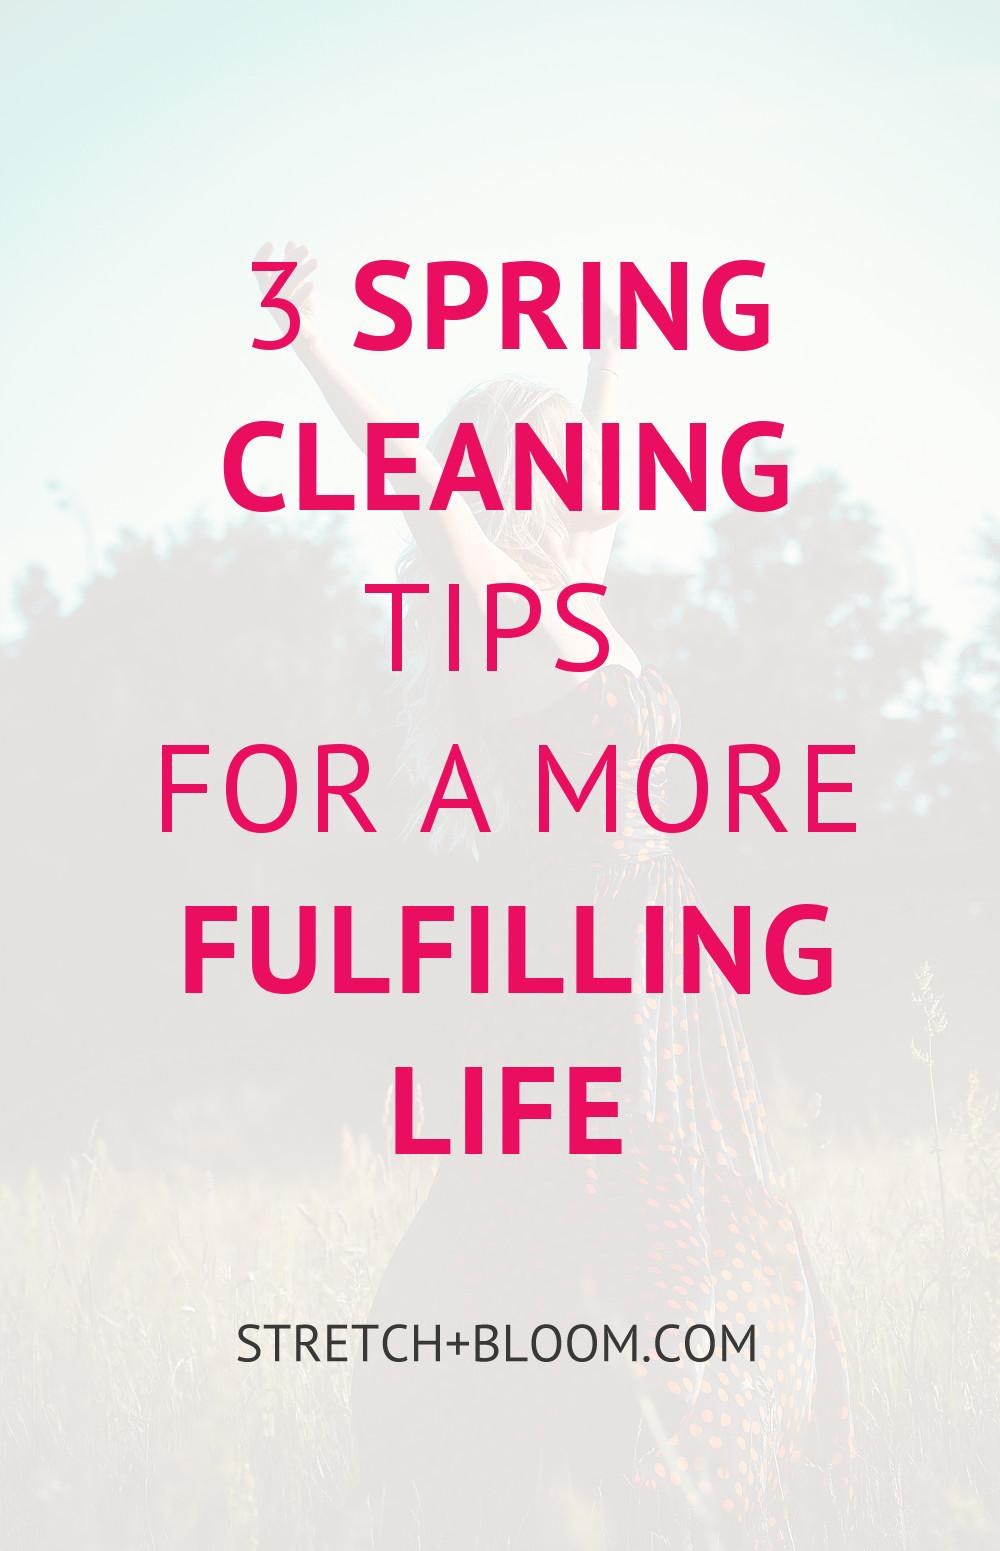 Spring Cleaning Tips More Fulfilling Life